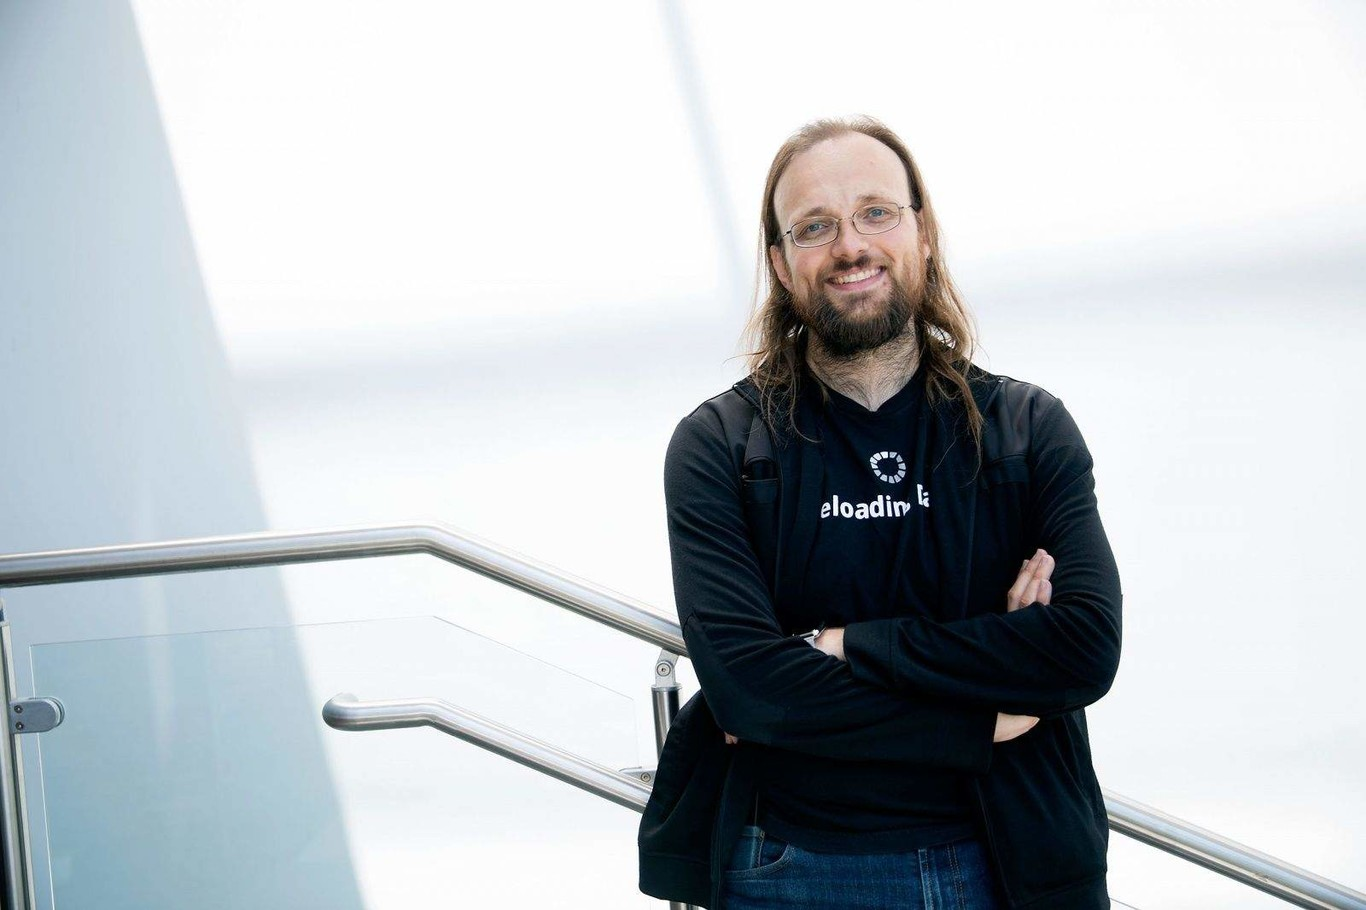 Saurik, creator of Cydia and most iconic person in the jailbreak panorama for iOS